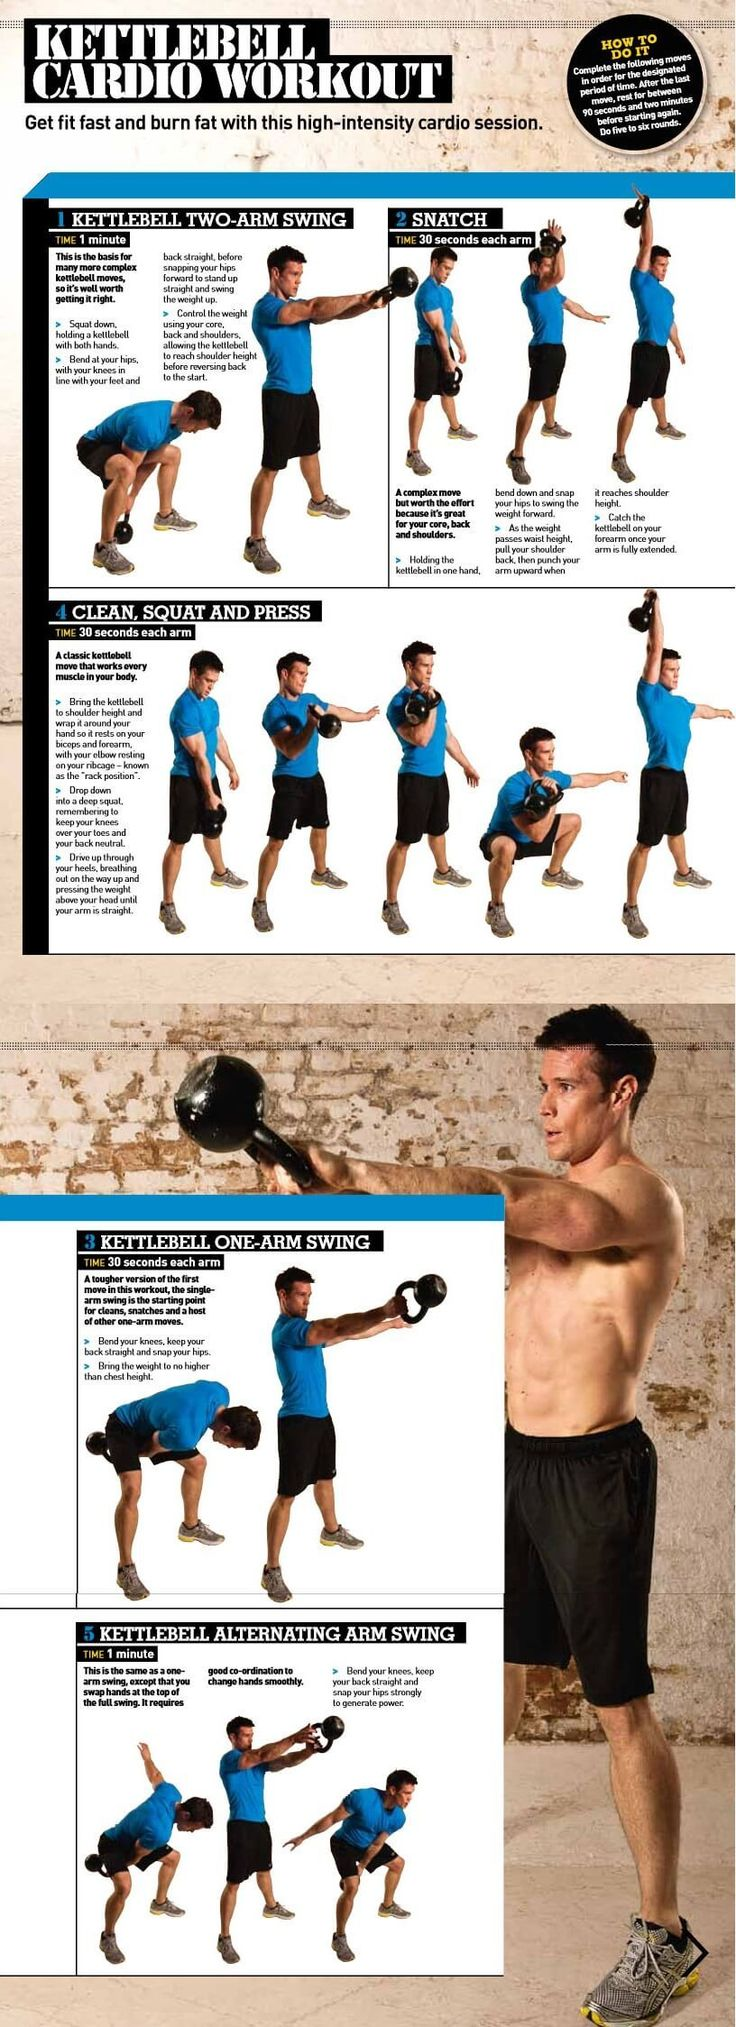 19 Best Basic Workouts Images On Pinterest Workout Routines Timesaving Fullbody Circuit Fitnessrx For Women High Intensity Kettlebell Cardio Infographic